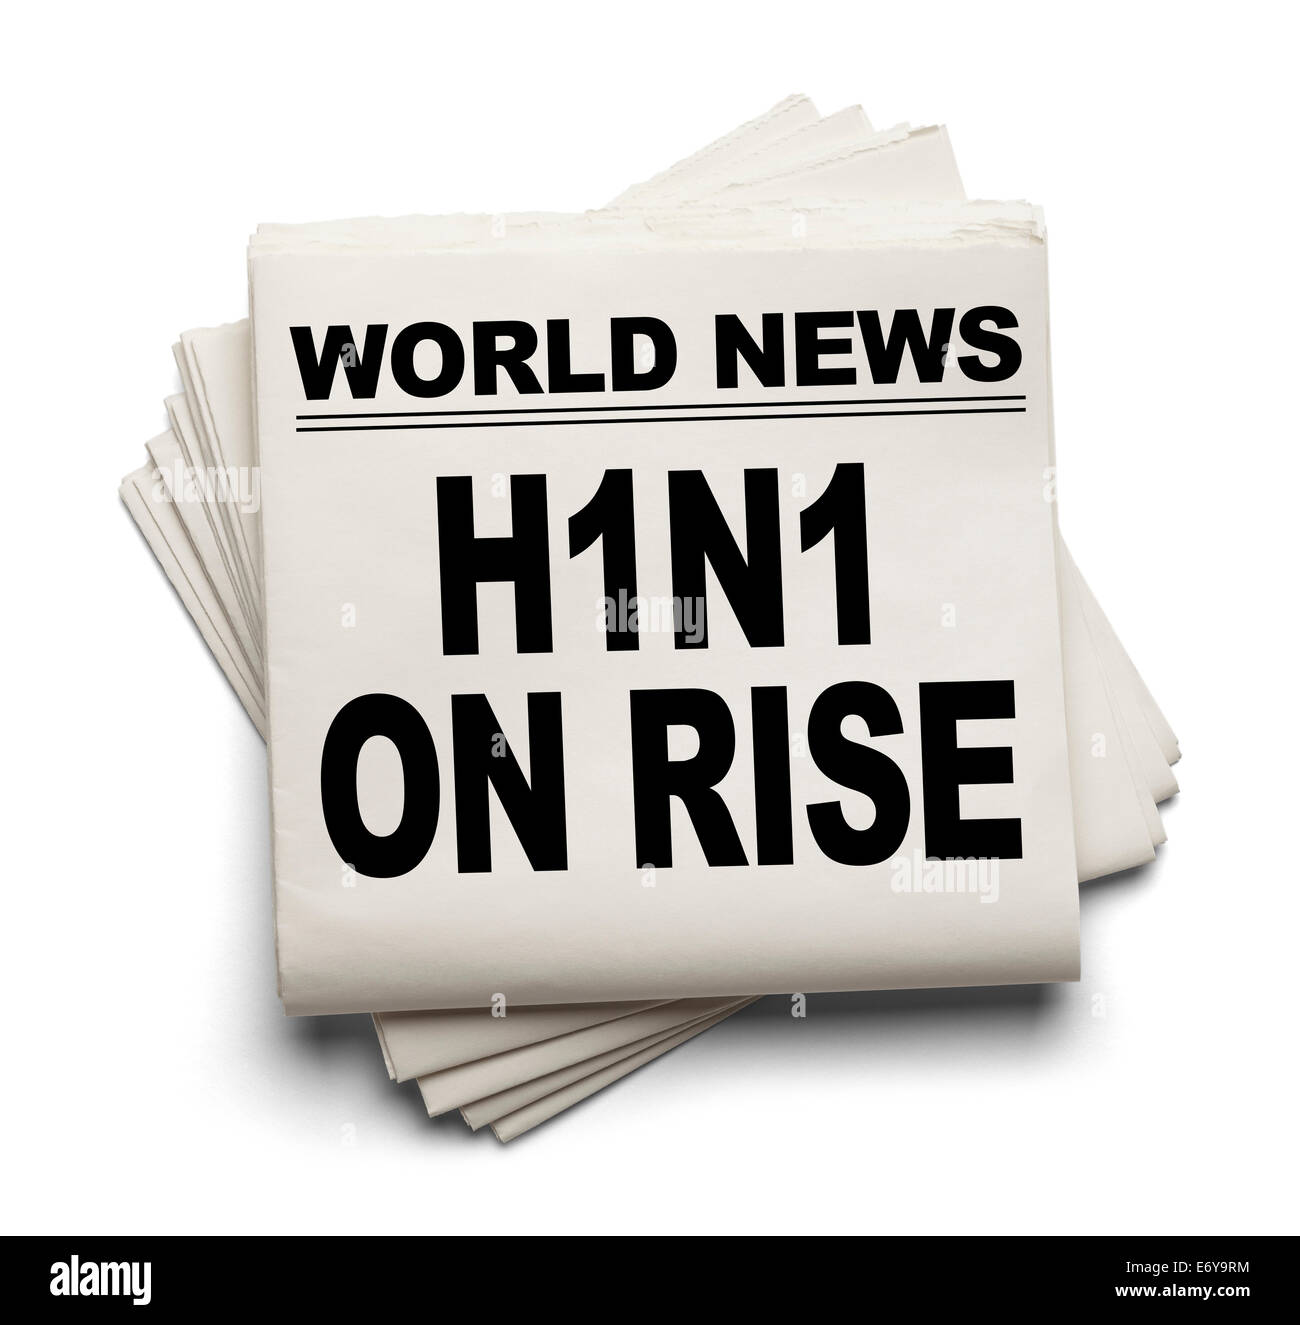 World News Paper Headline H1N1 On Rise Isolated on White Background. - Stock Image